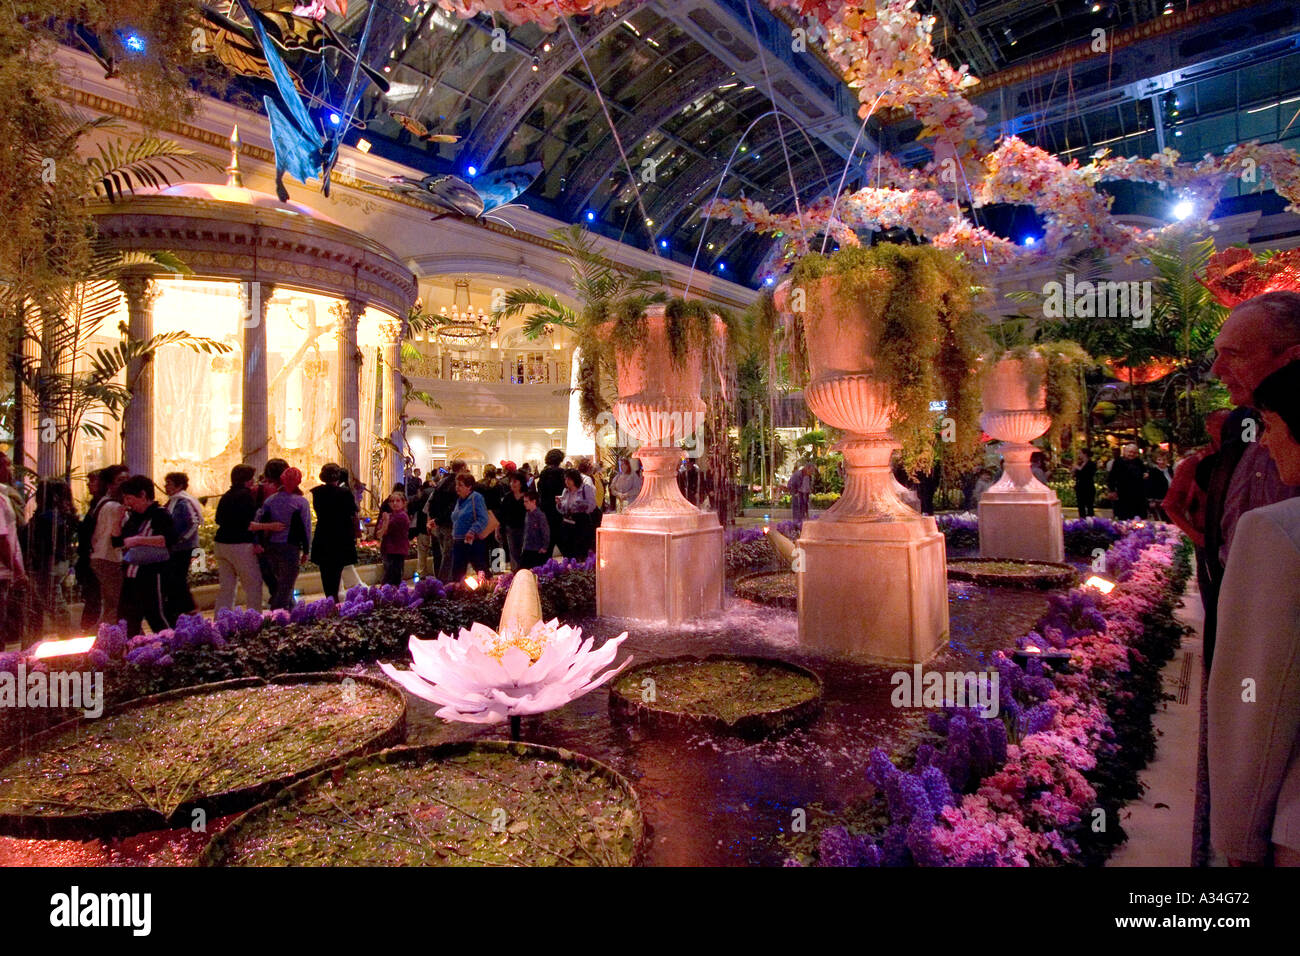 Conservatory And Botanical Gardens Inside Bellagio Hotel Las Vegas NV  Nevada USA